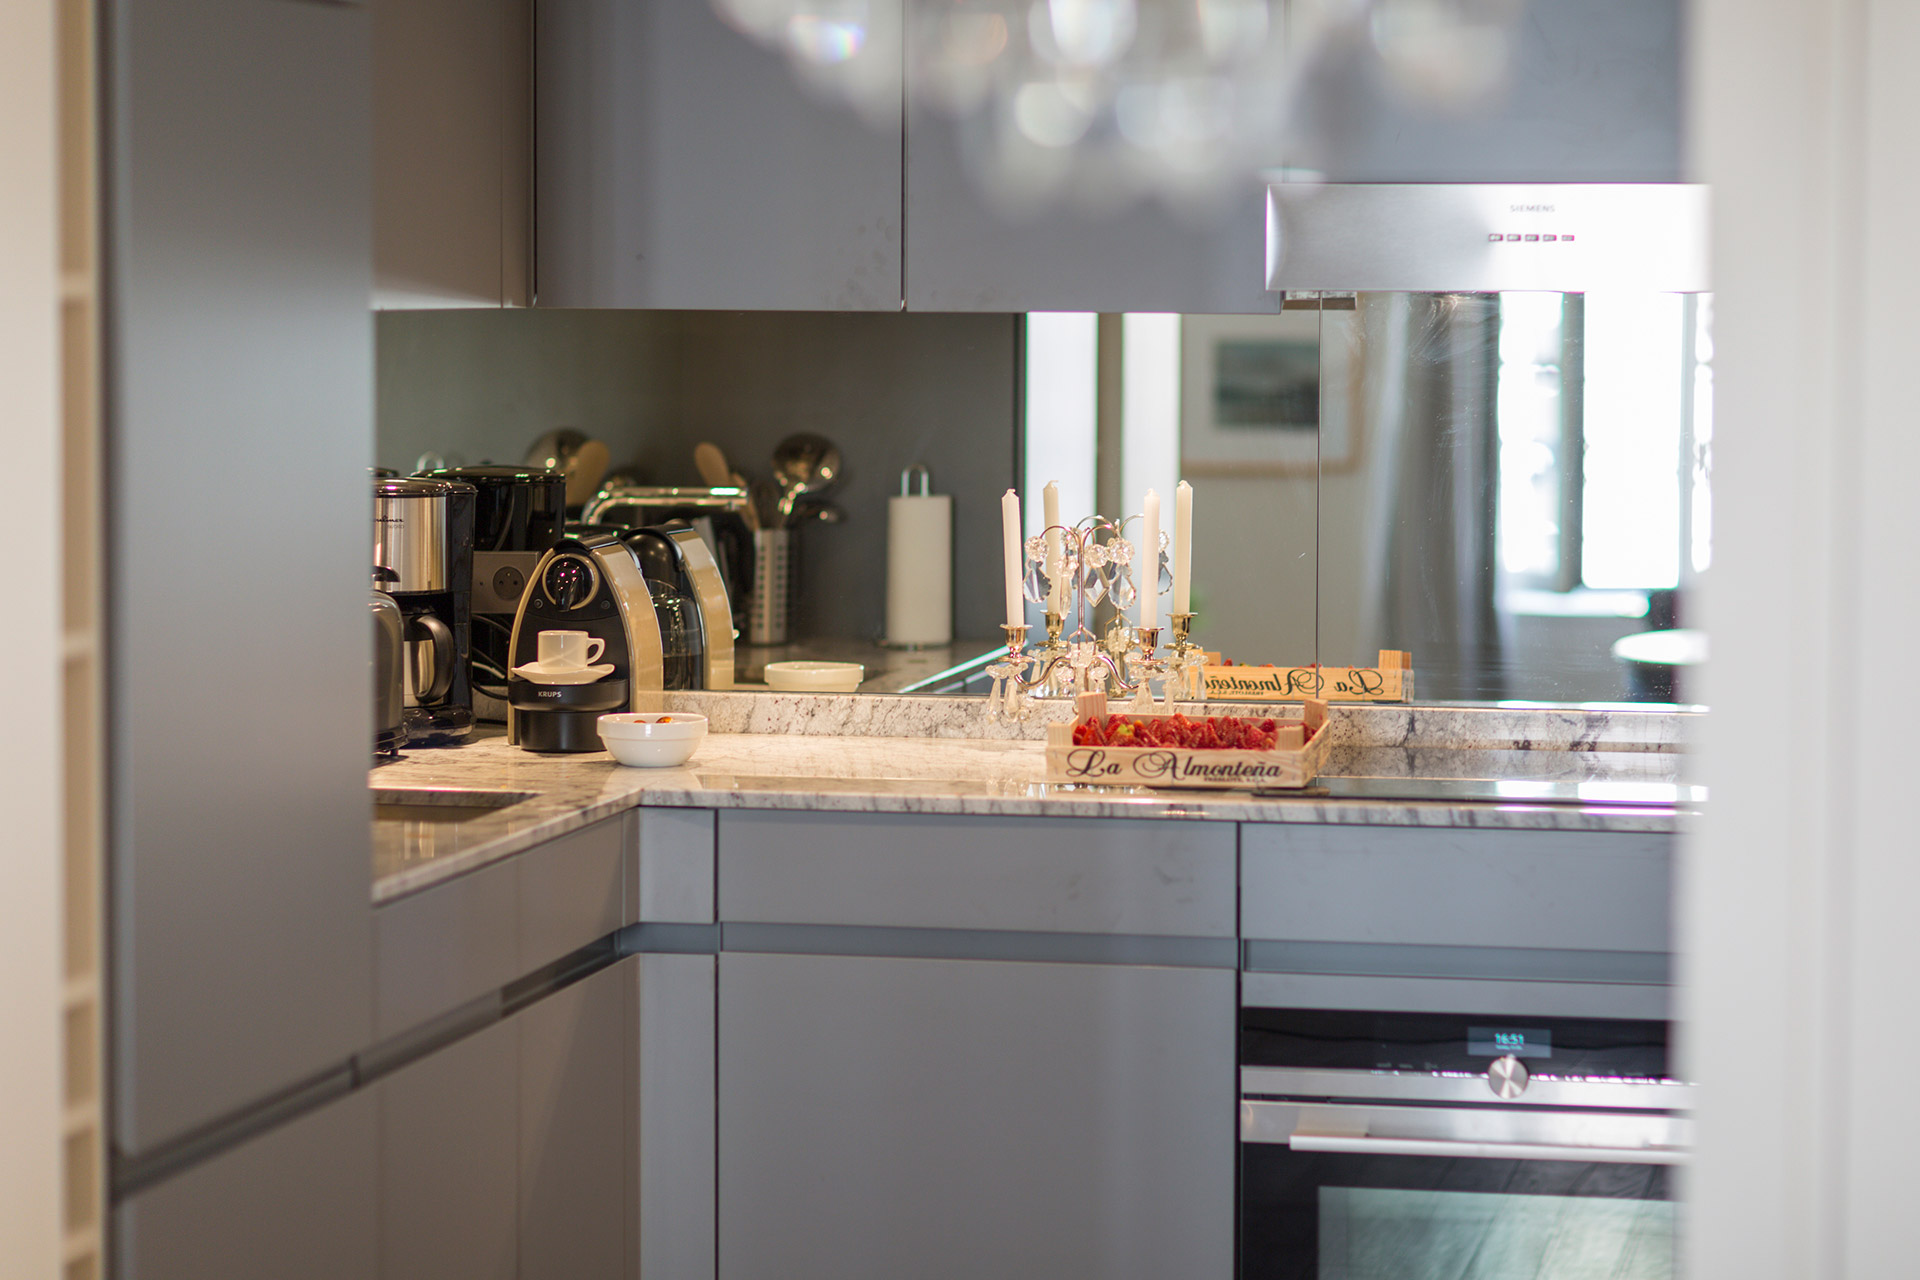 Fully equipped kitchen of the Loupiac vacation rental offered by Paris Perfect